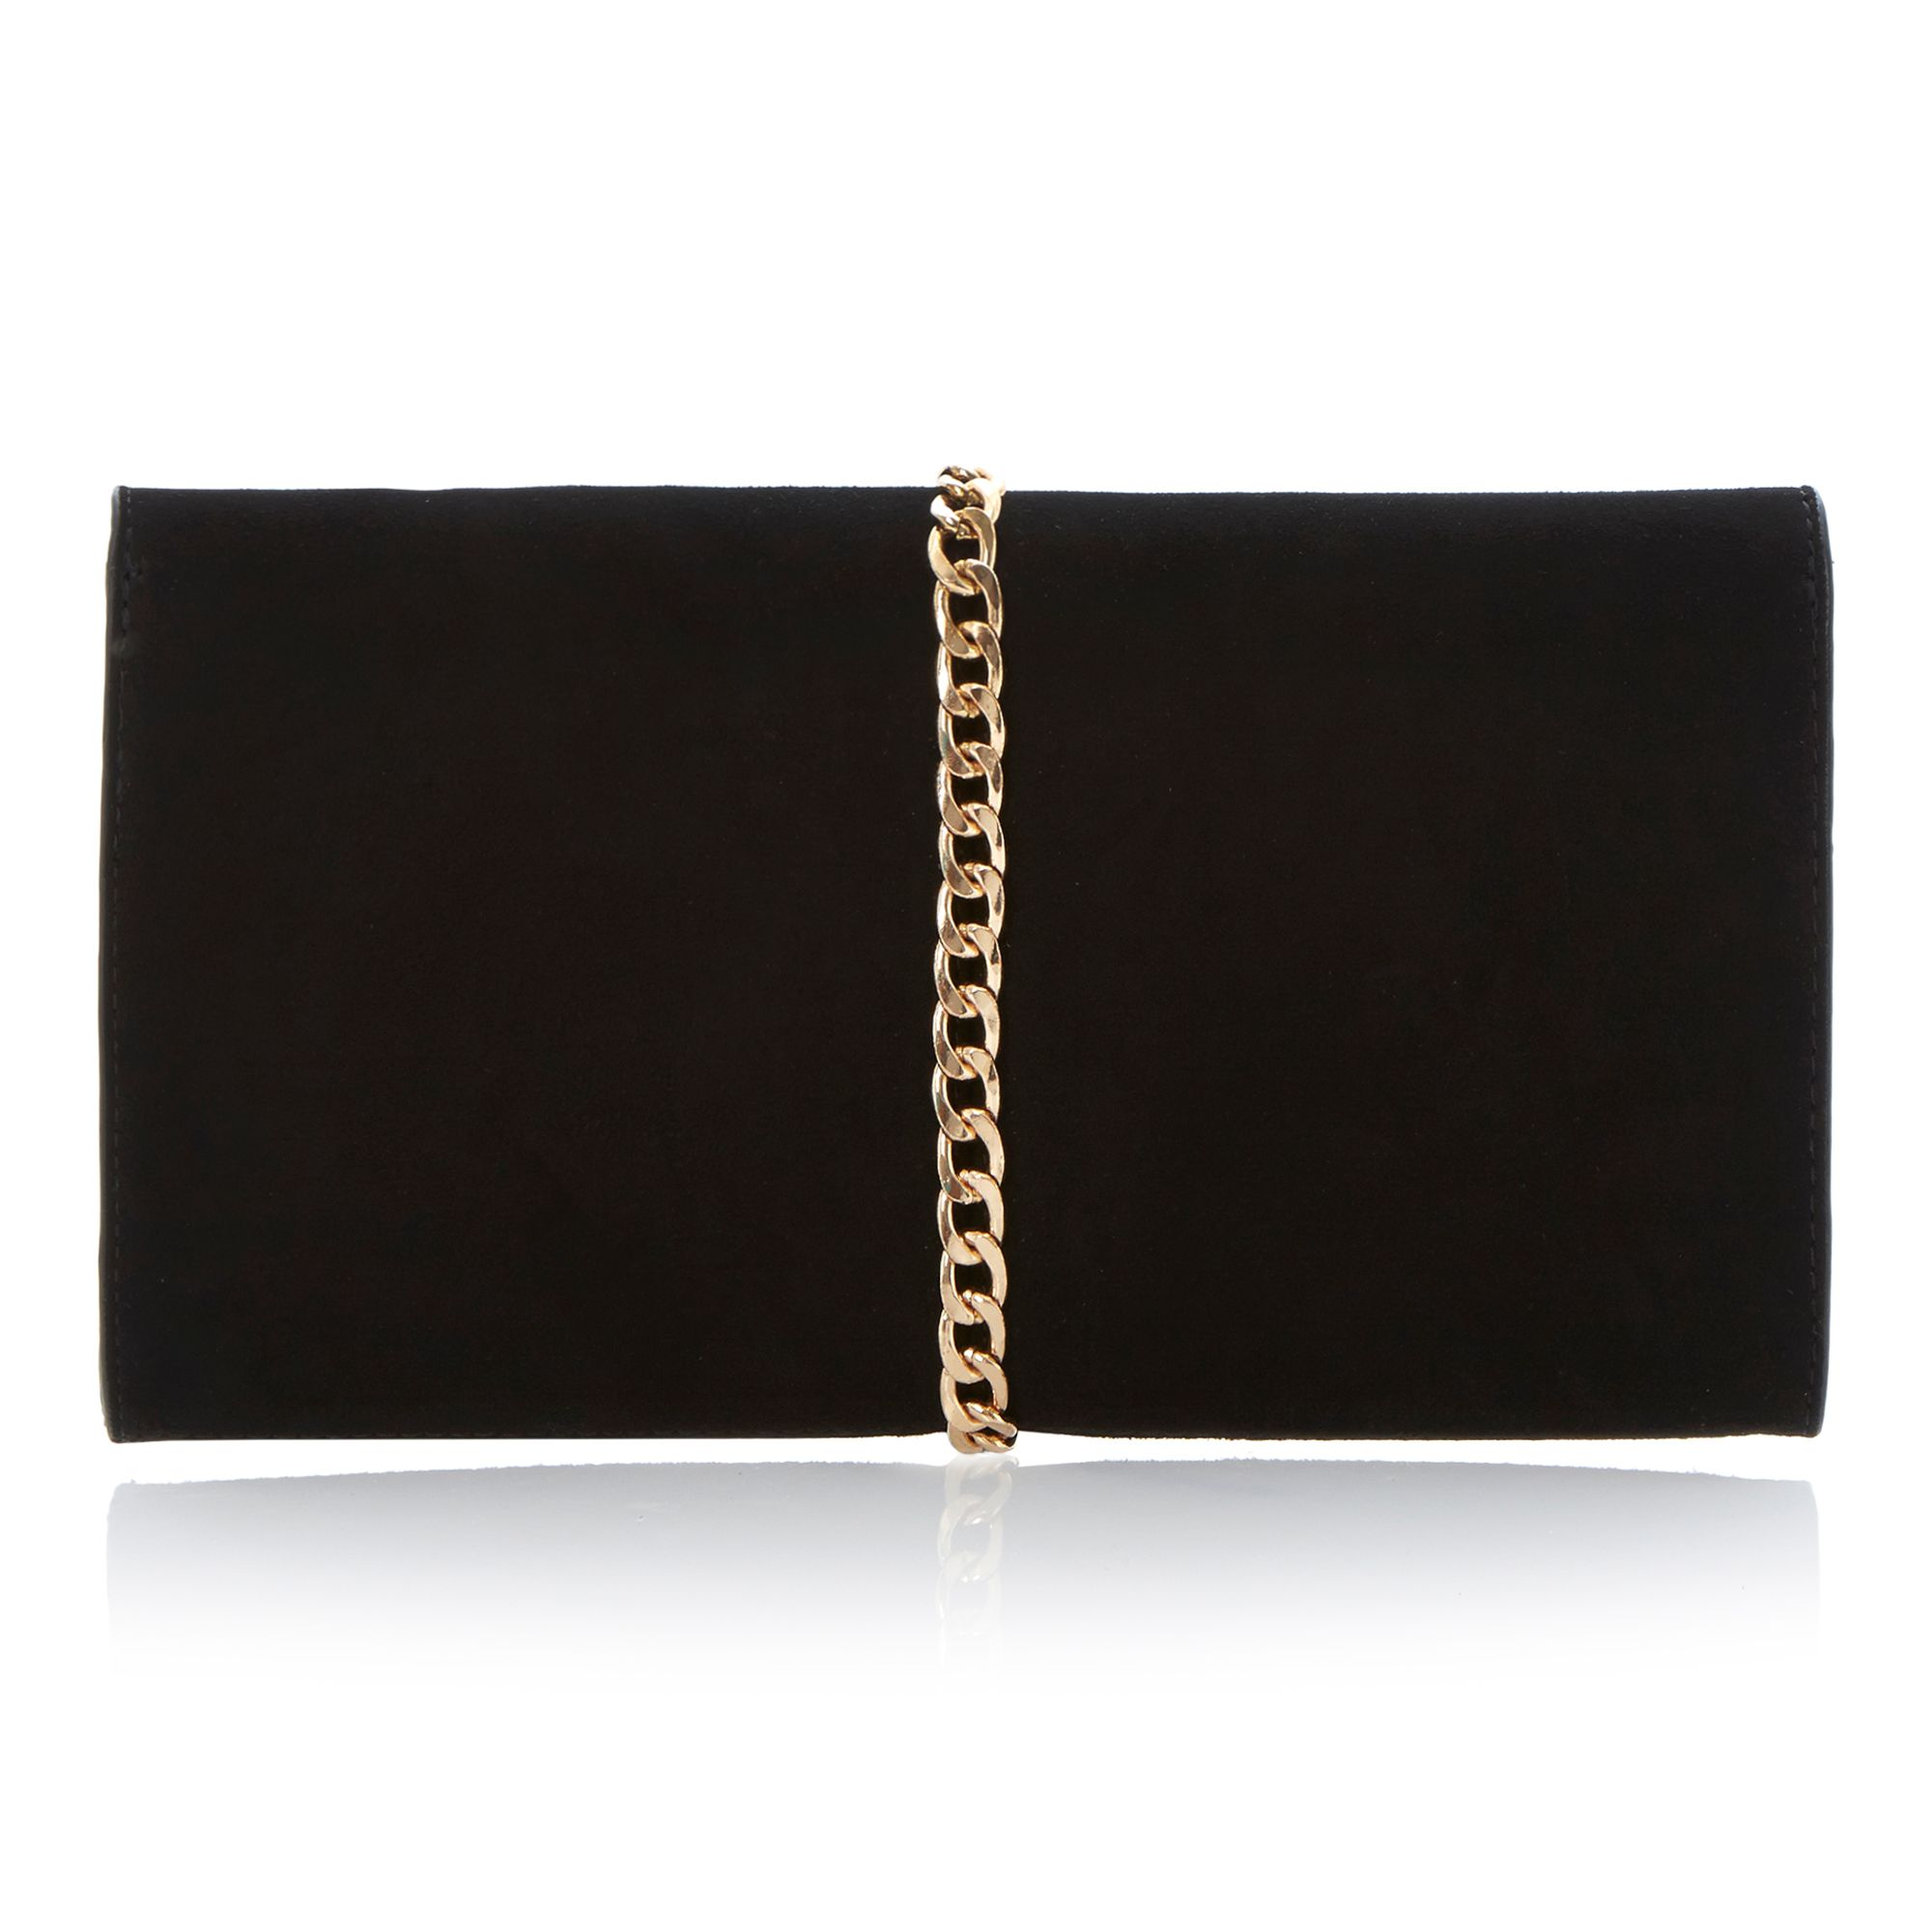 Edgie chain and tassel trim clutch bag